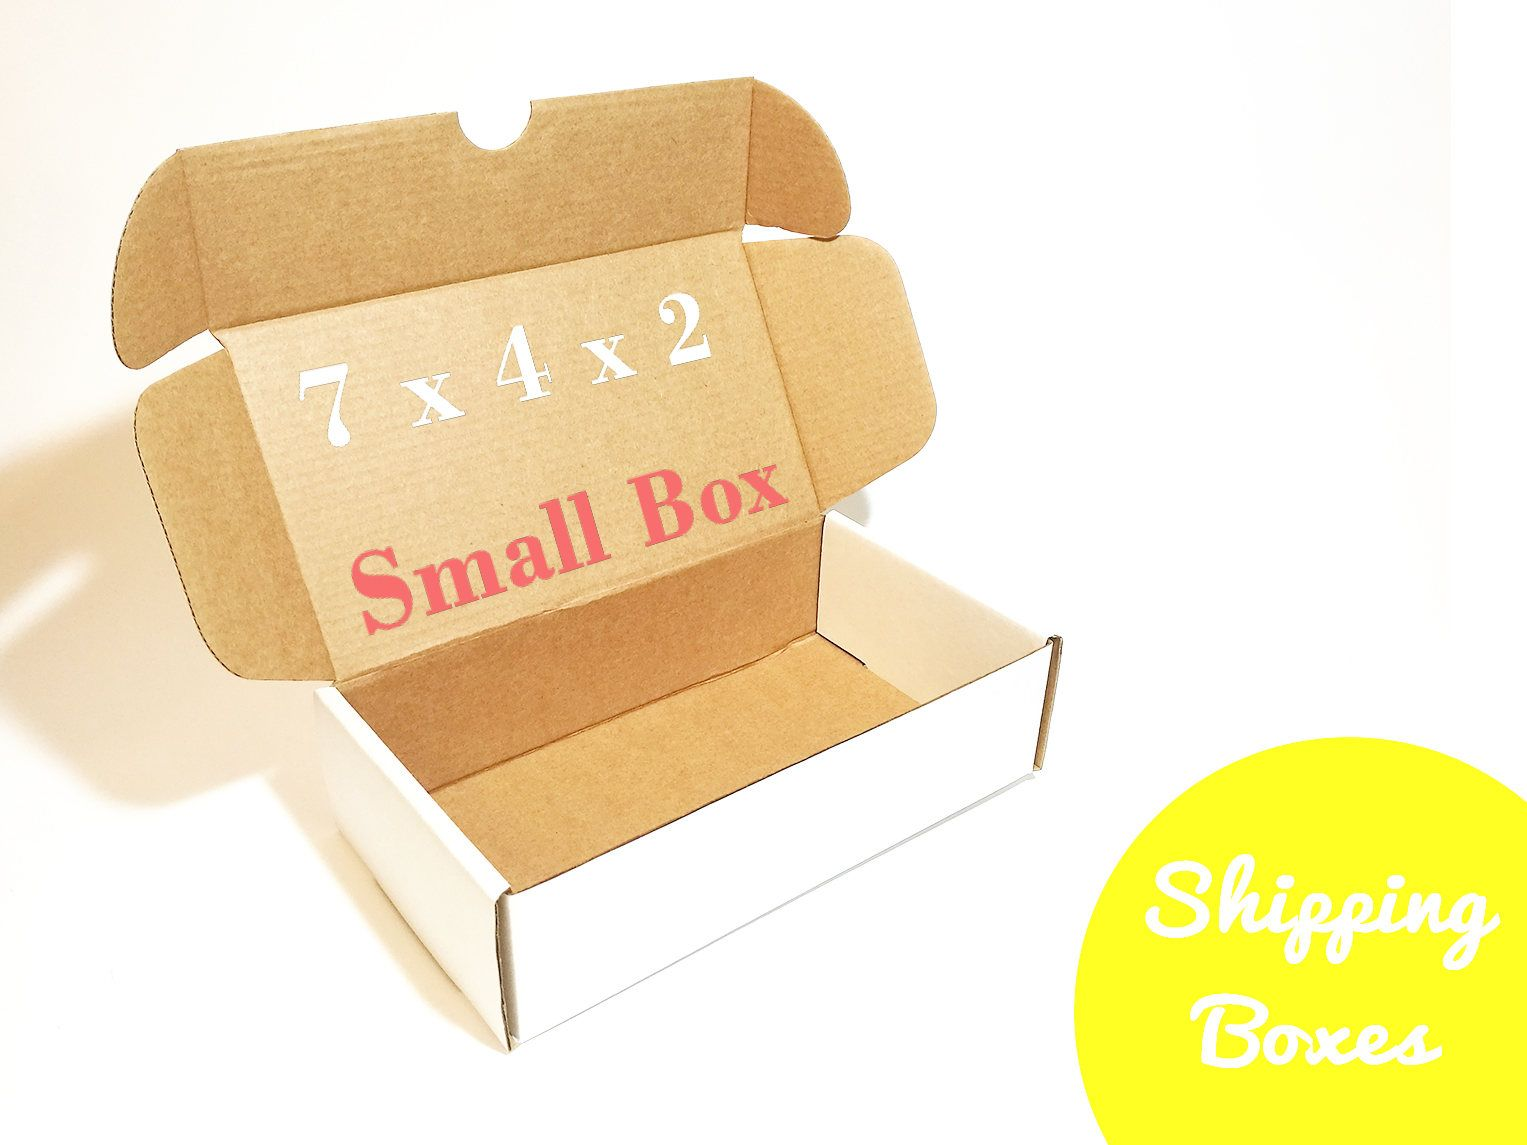 Cardboard Shipping Box For Small Items Box Sample Kraft Boxes For Small Business Handmade Products Packaging Ideas Mini Box For Handmade Jewelry Packaging Box Packaging Supplies Carton Box